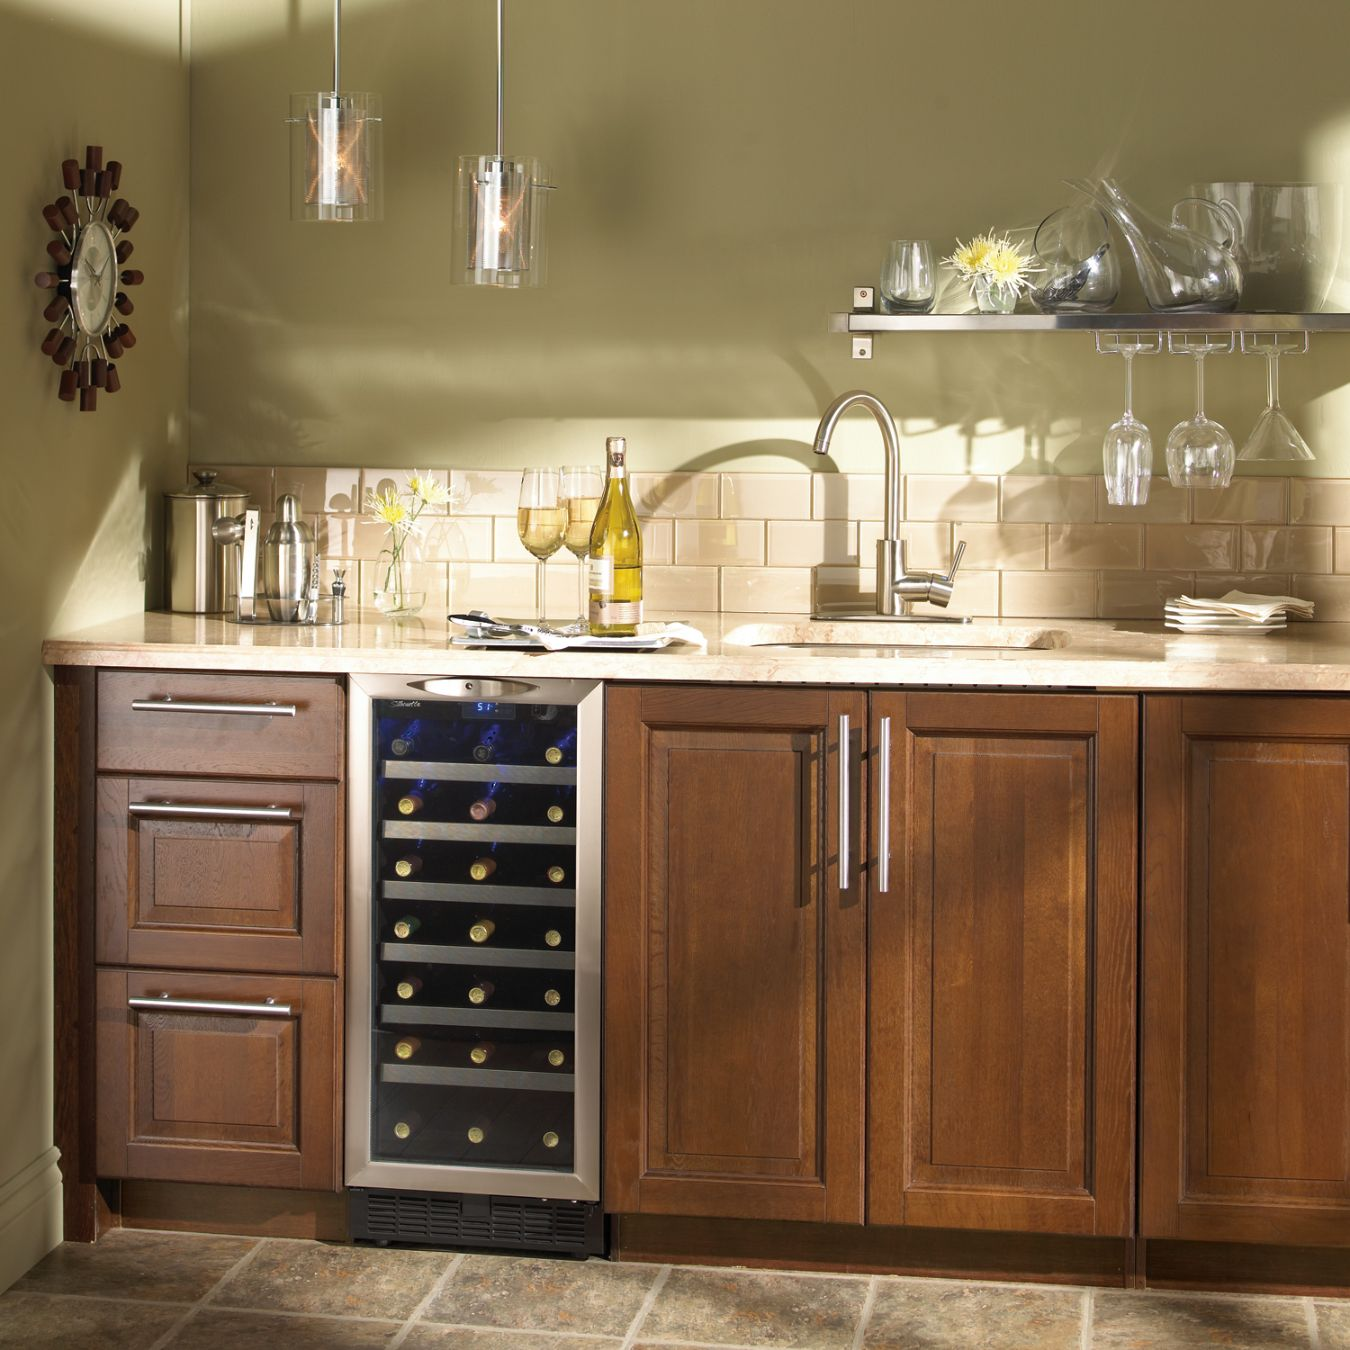 countertop edgestar cooler and inch doors french wine with wide beverage